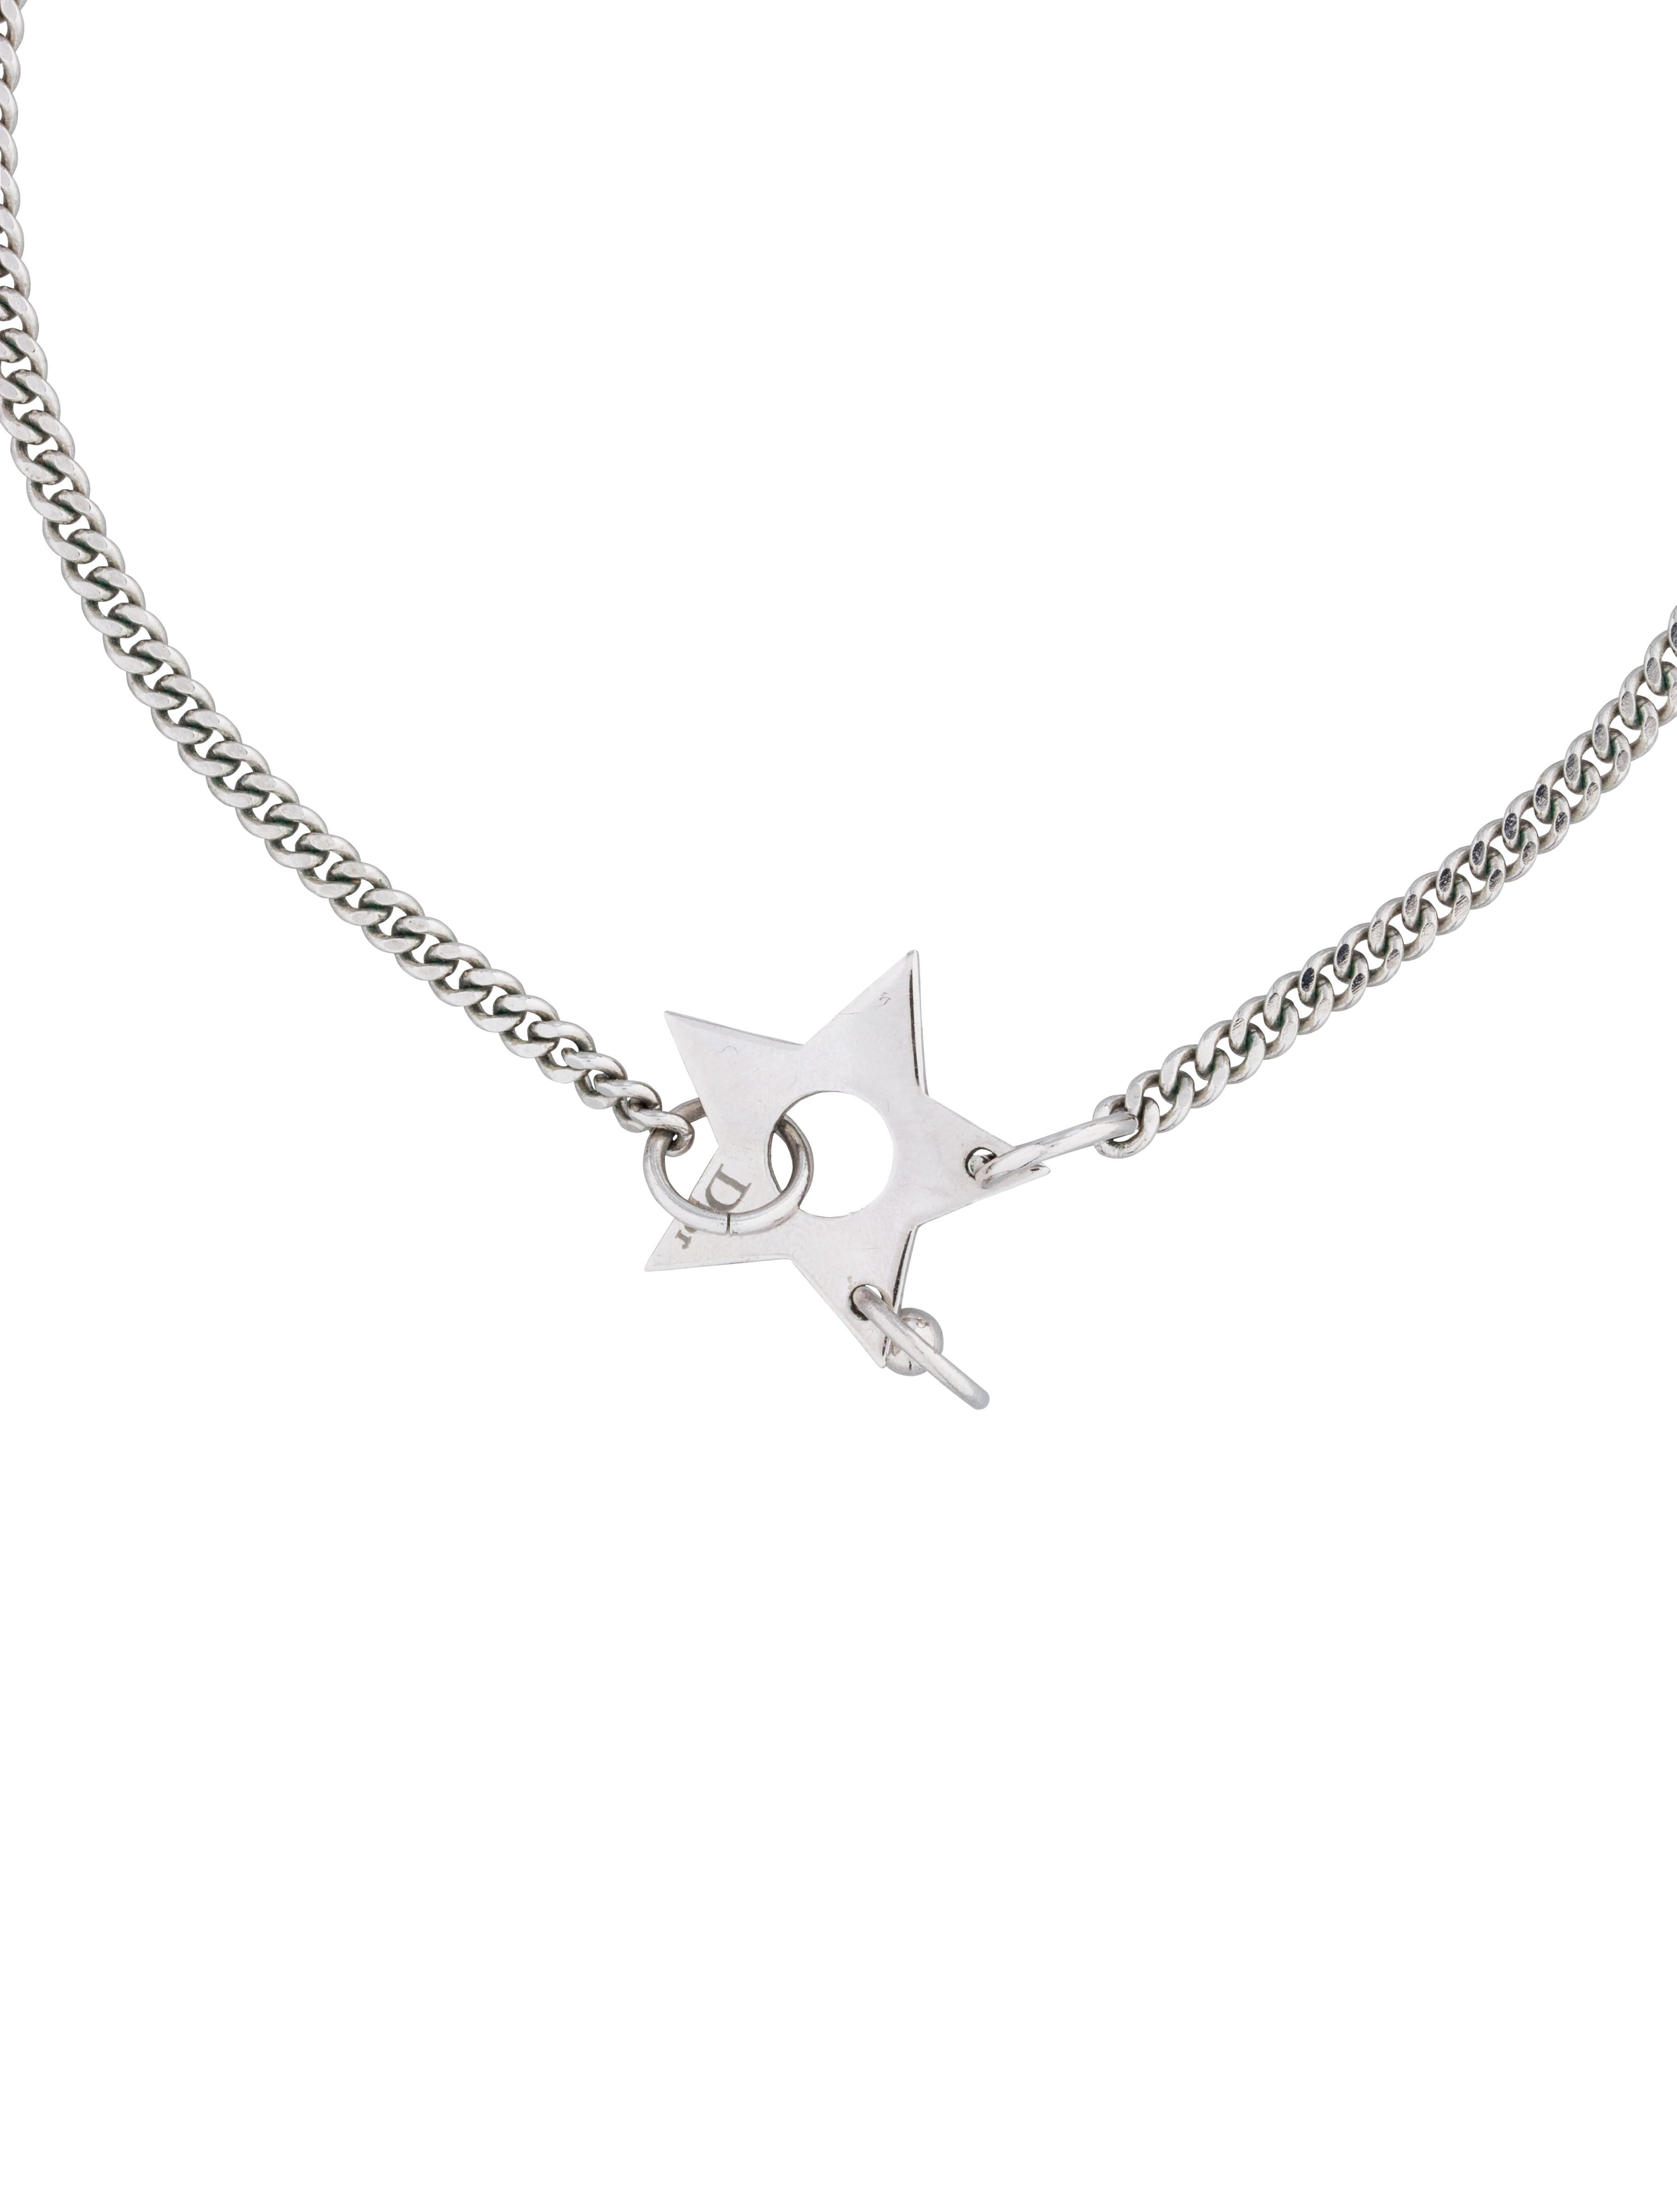 Christian Dior Star Pendant Necklace Necklaces CHR